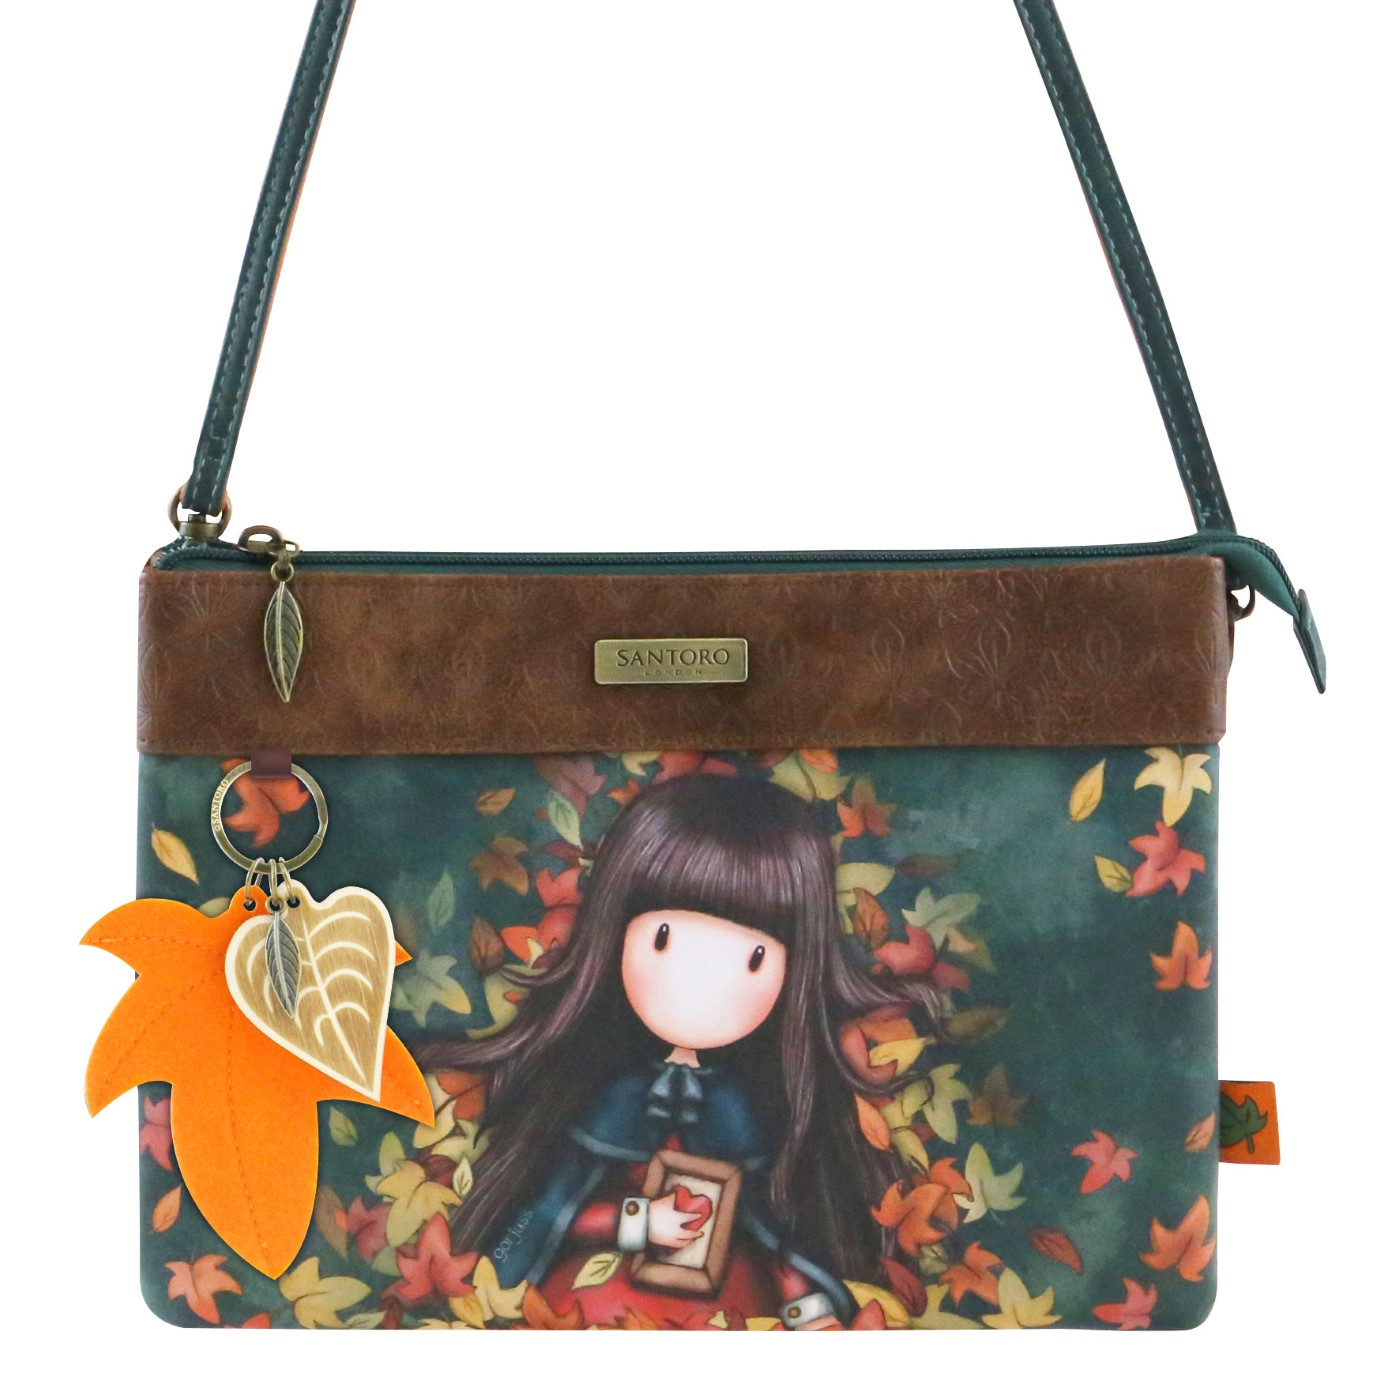 Santoro poseta petrol crossbody Gorjuss Autumn Leaves